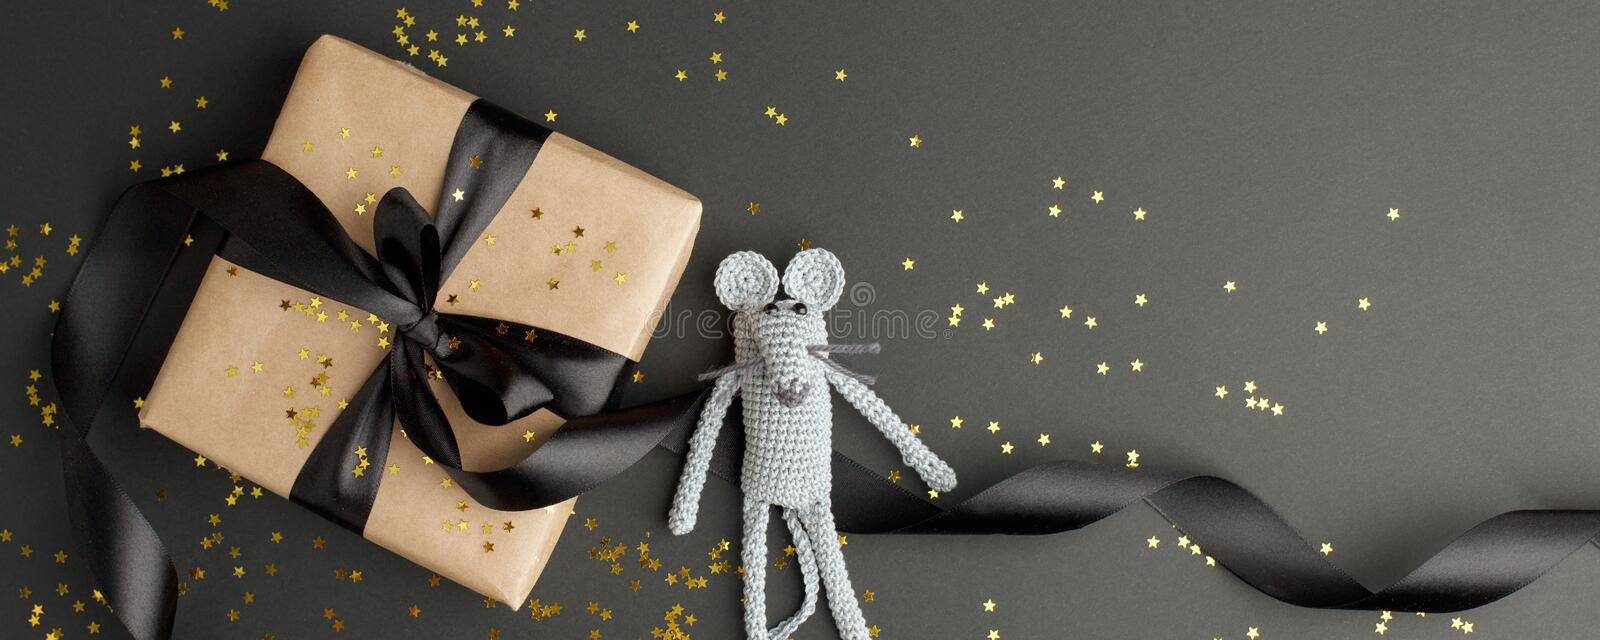 Mouse is a Symbol of new year 2020. Toy mouse and stylish gift box with black bow on black background. New year and Christmas. Concept. Copy space. Banner stock images